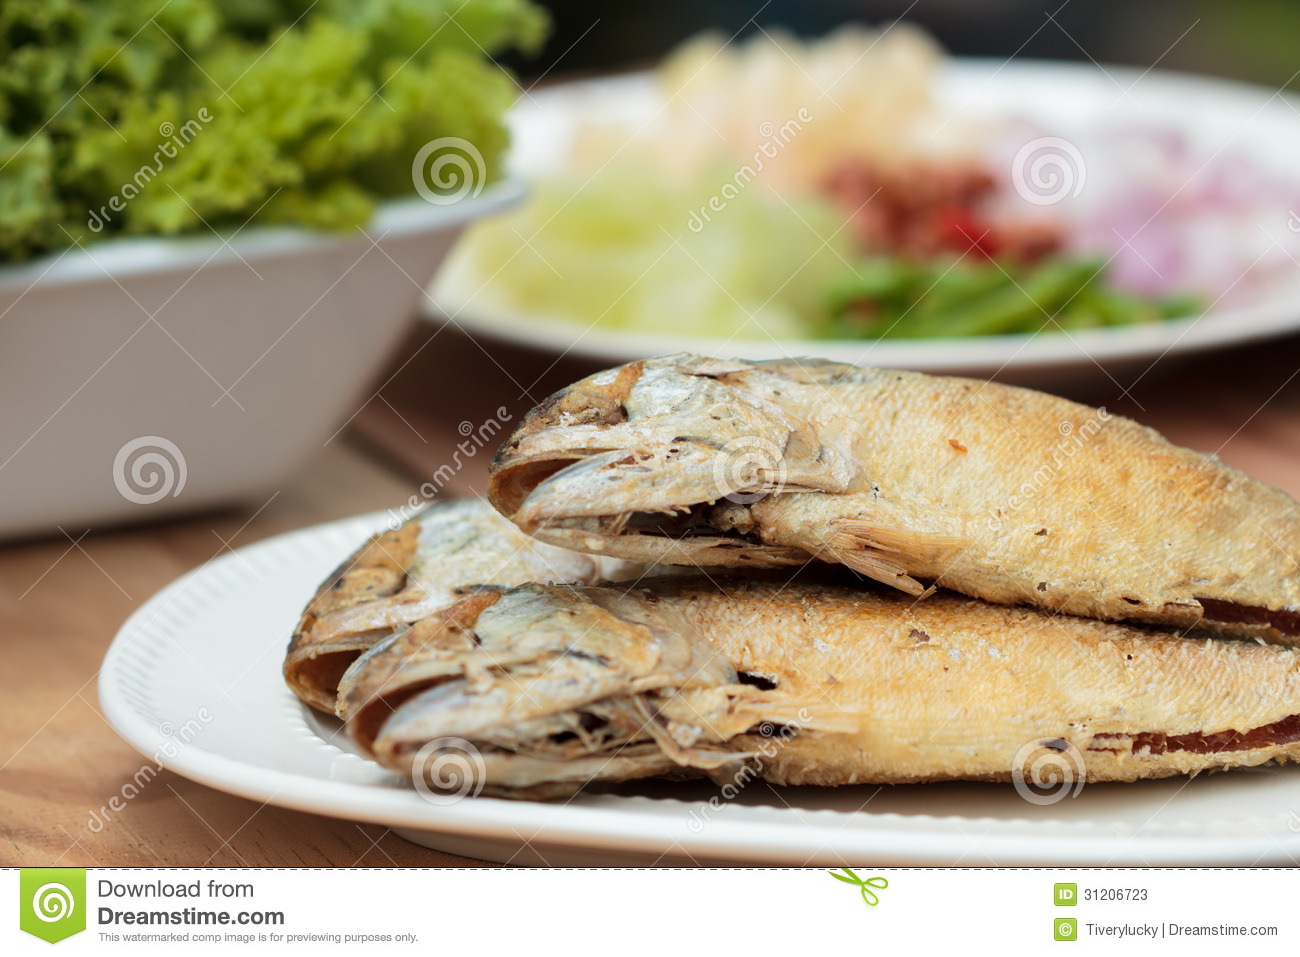 Fried fish stock photos image 31206723 for Side dishes for fried fish